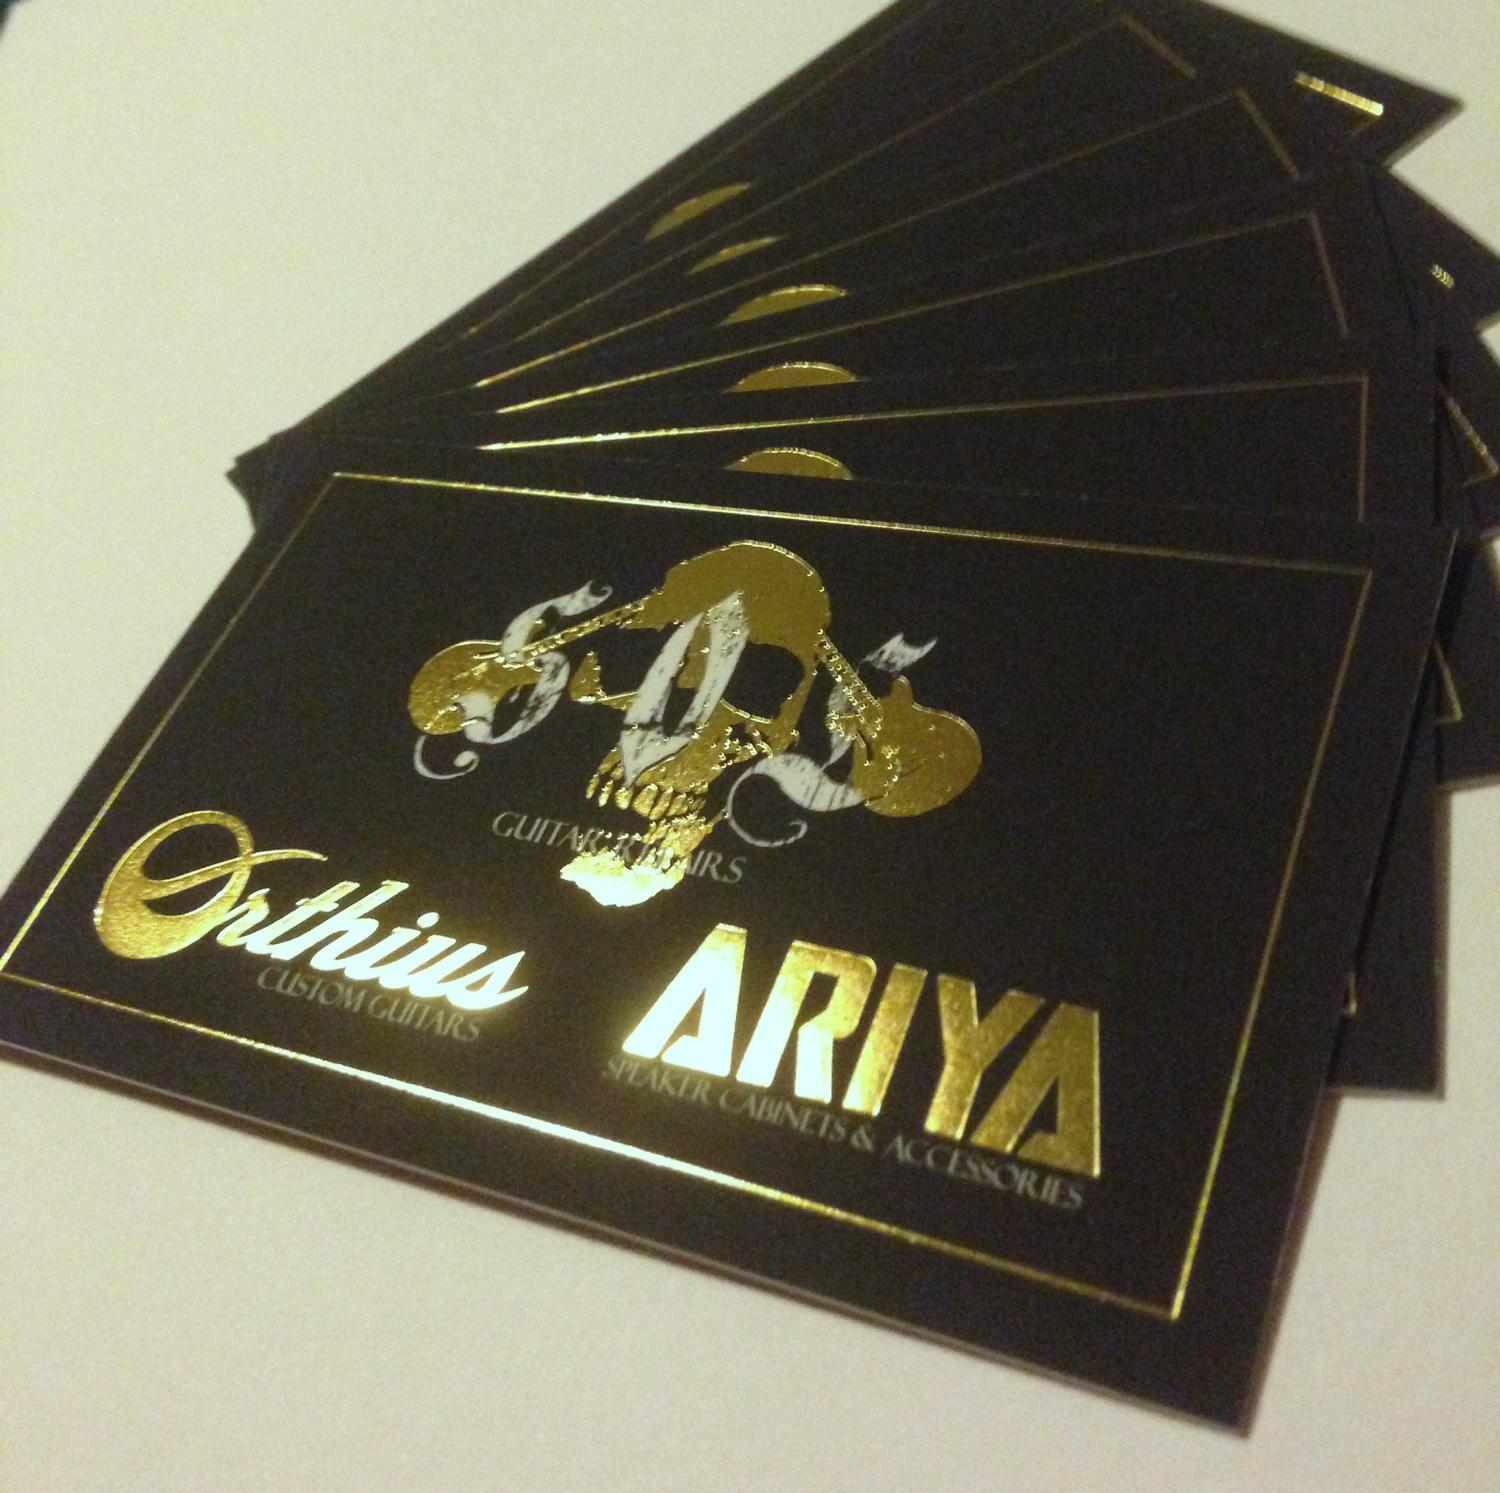 Business Card design and printing for SOL Orthius Guitars and ARIYA